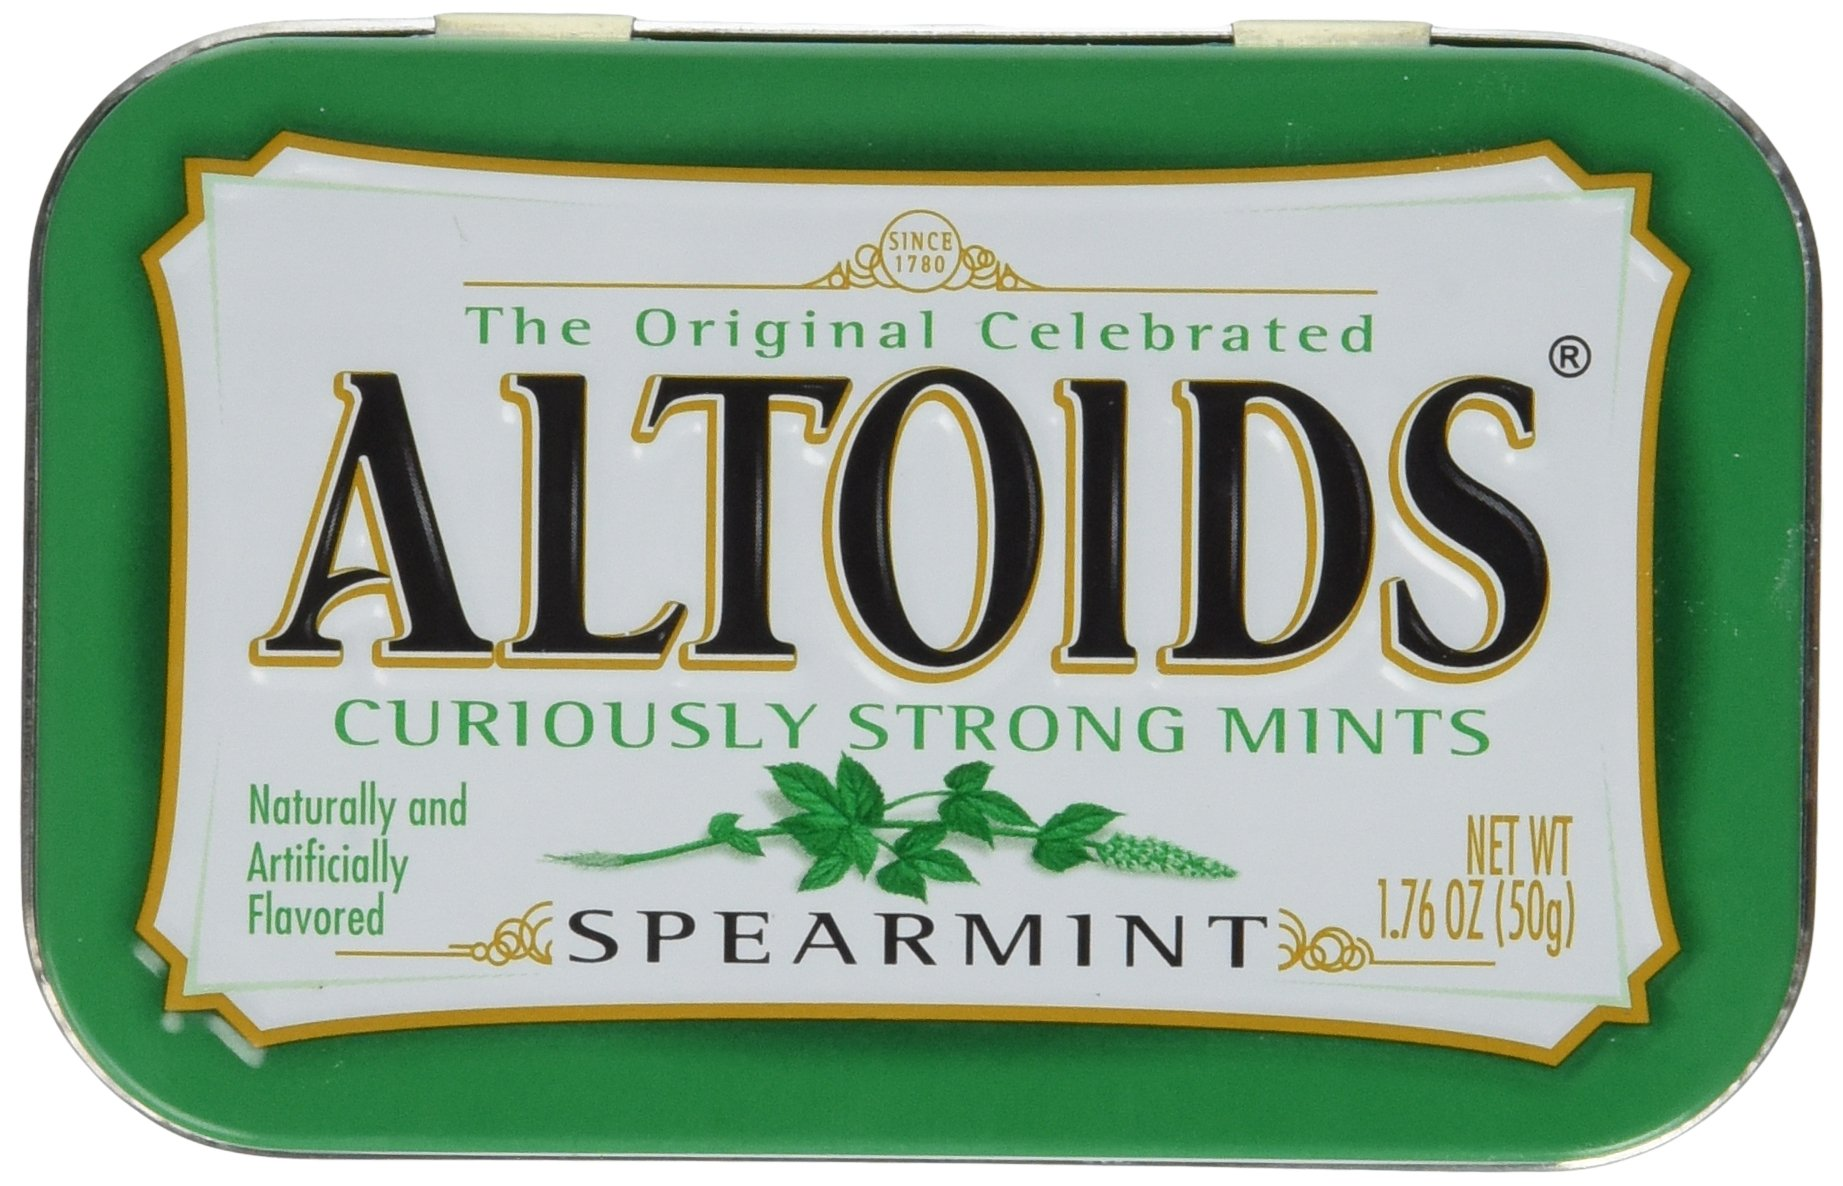 Altoids Curiously Strong Mints - Spearmint 1.76 oz (Pack of 6) by Altoids (Image #1)